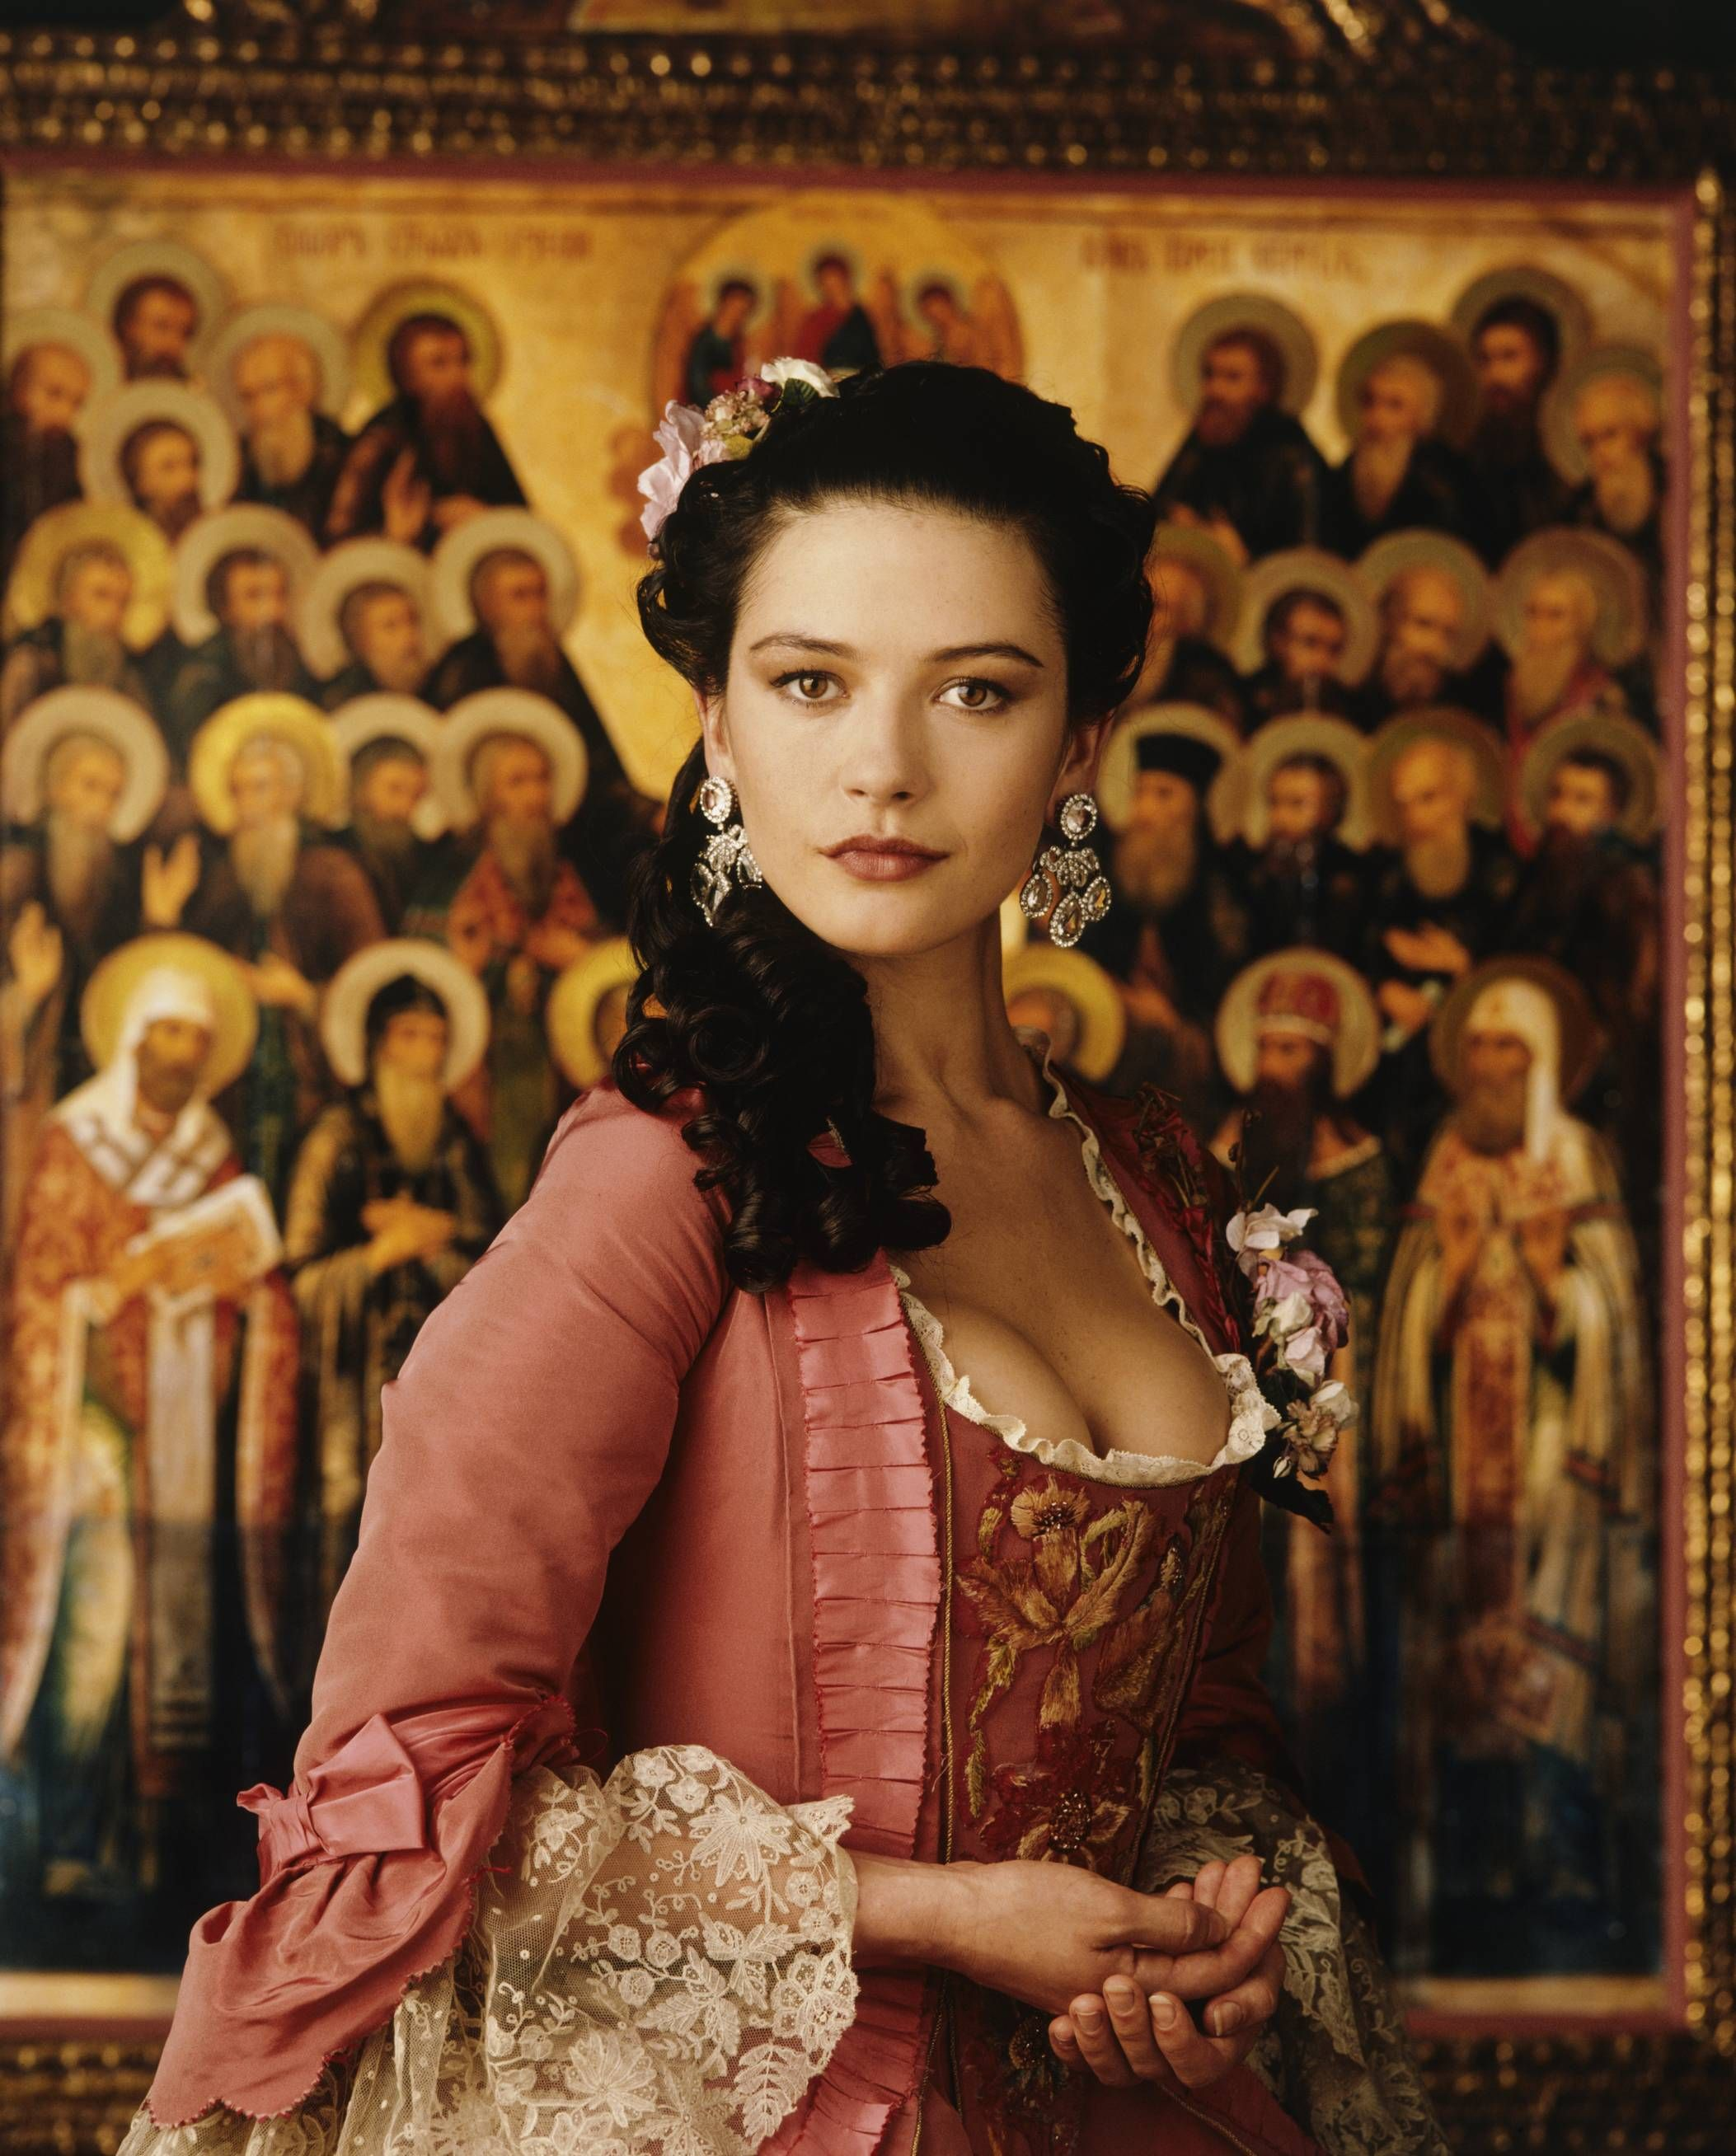 Films about Catherine the Great: a list of the best 4